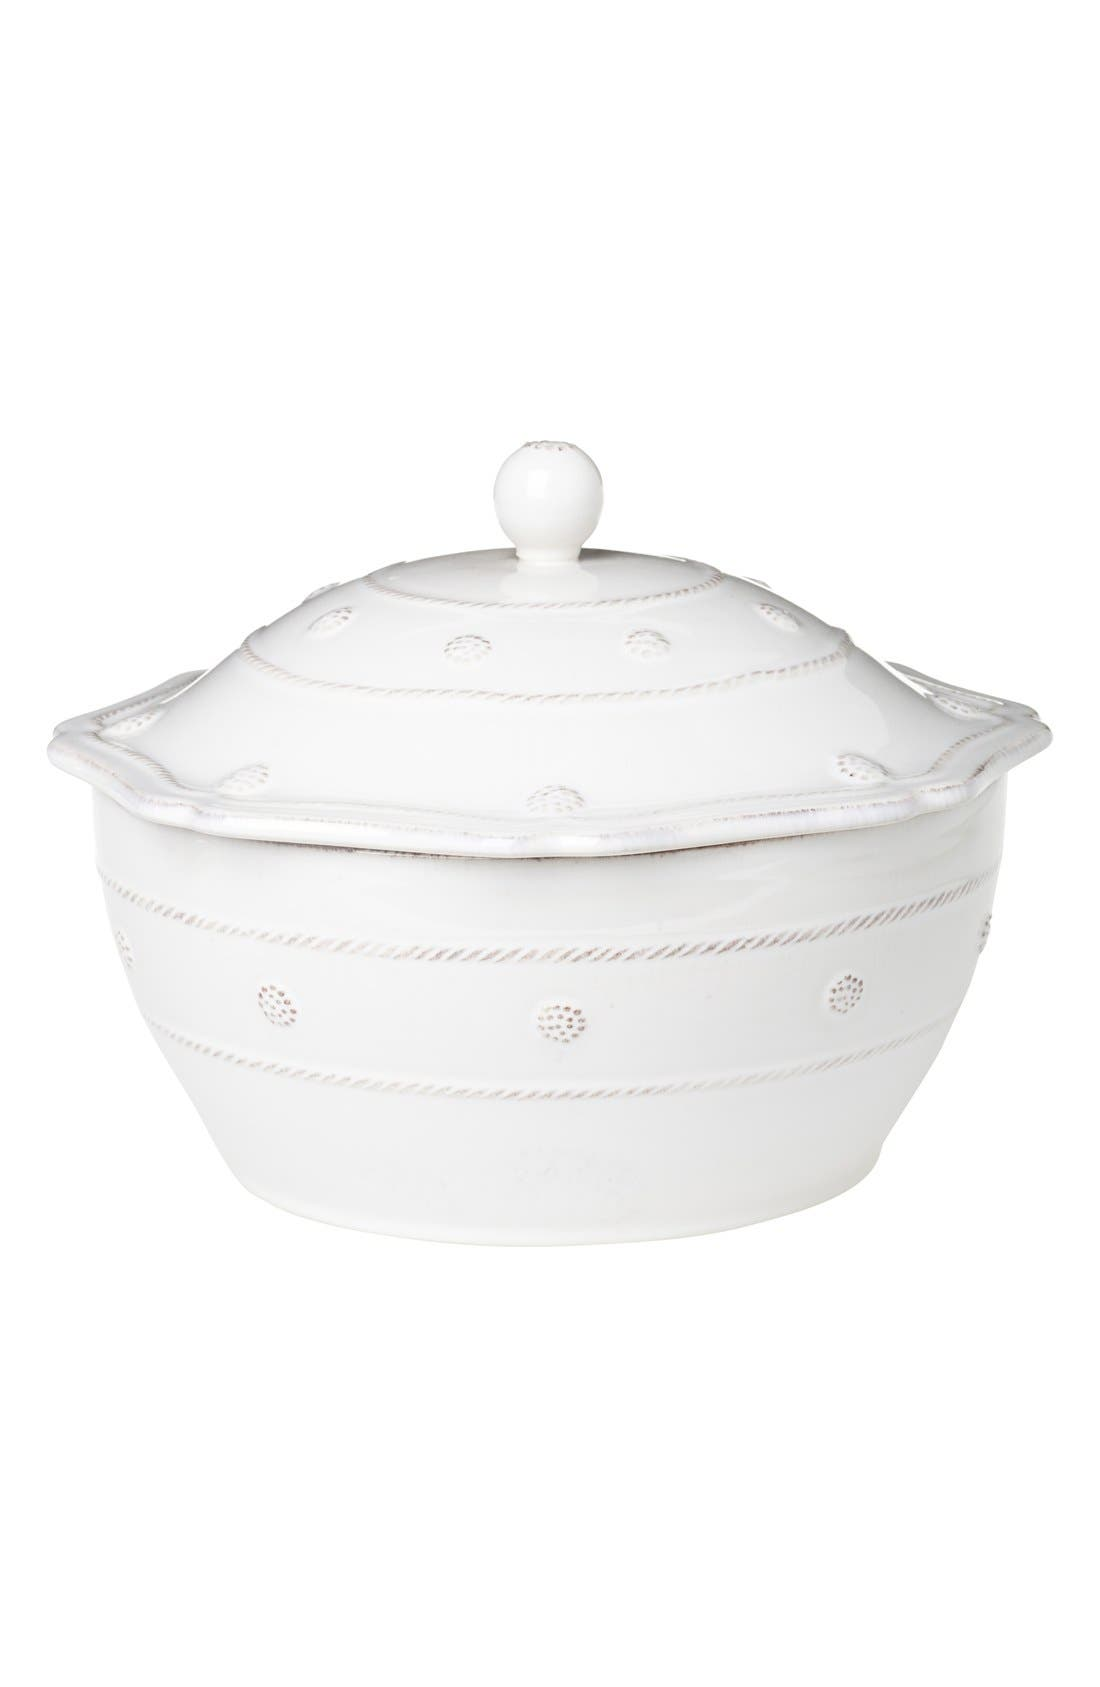 Alternate Image 1 Selected - Juliska 'Berry and Thread' Casserole Dish with Lid